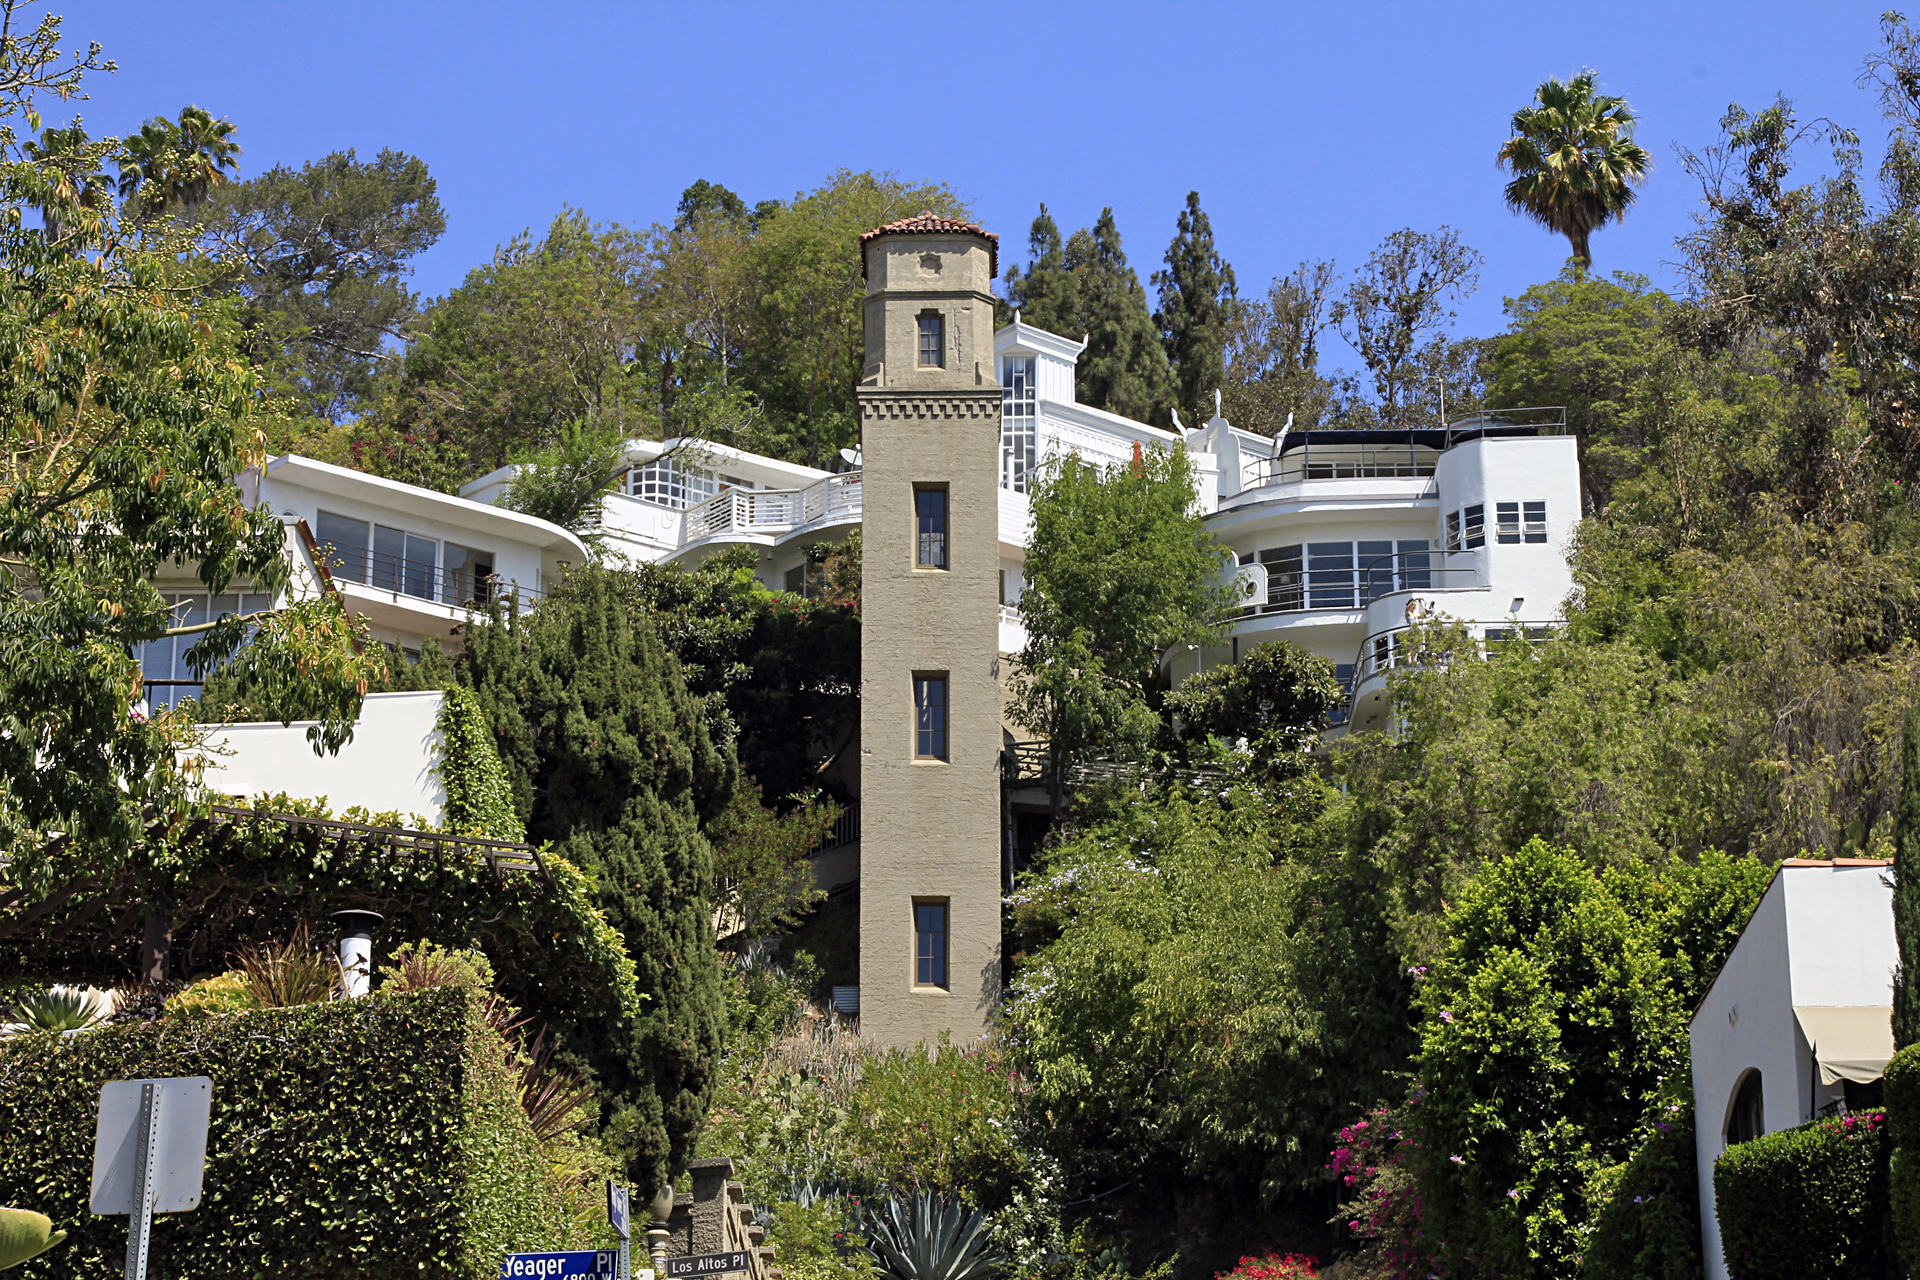 Like a hillside fortress, the Hollywood High Tower is the centerpiece of a small complex of multi-unit residences called High Tower Court, which are built onto the hillside near its top. The homes were built between 1935 and 1956 by architect Carl Kay (1892 – 1973) and the tower itself contains an elevator that provides the residents with quick access to their front door.